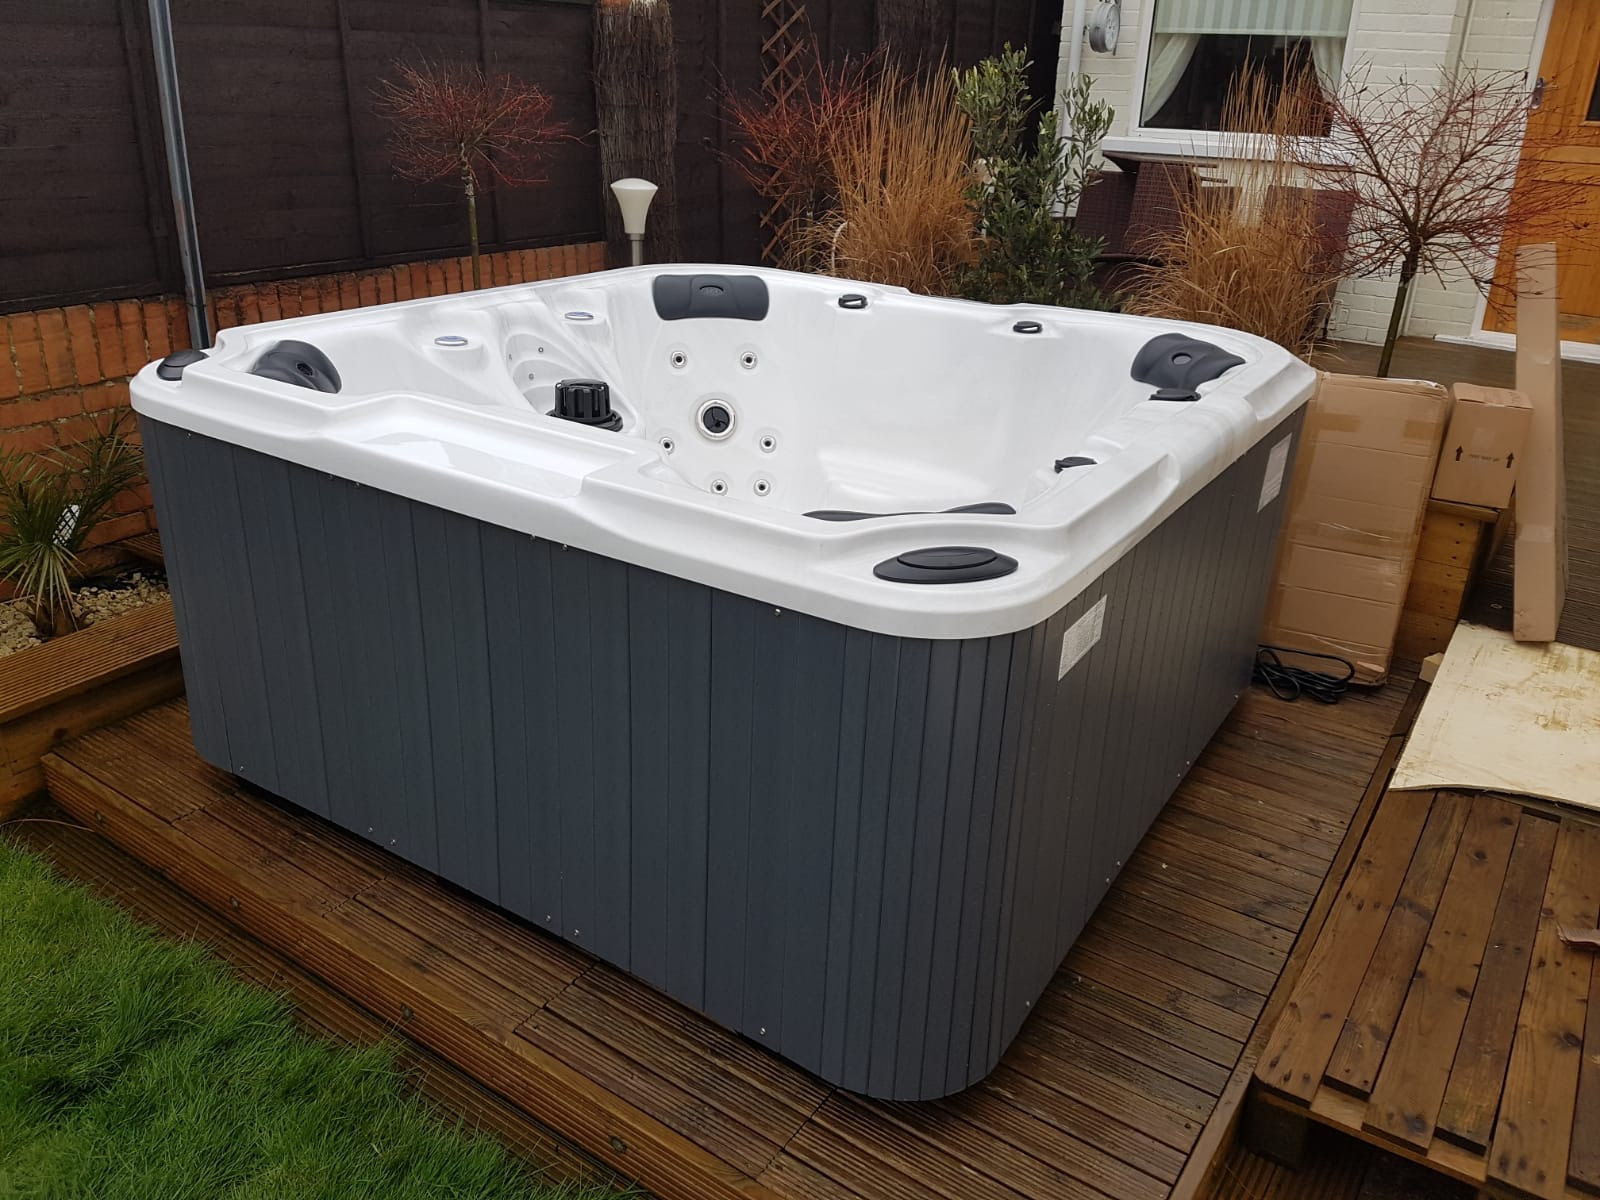 Plug and Play Hot Tub, 4 seat hot tub, hot tub, hot tubs, Jacuzzi